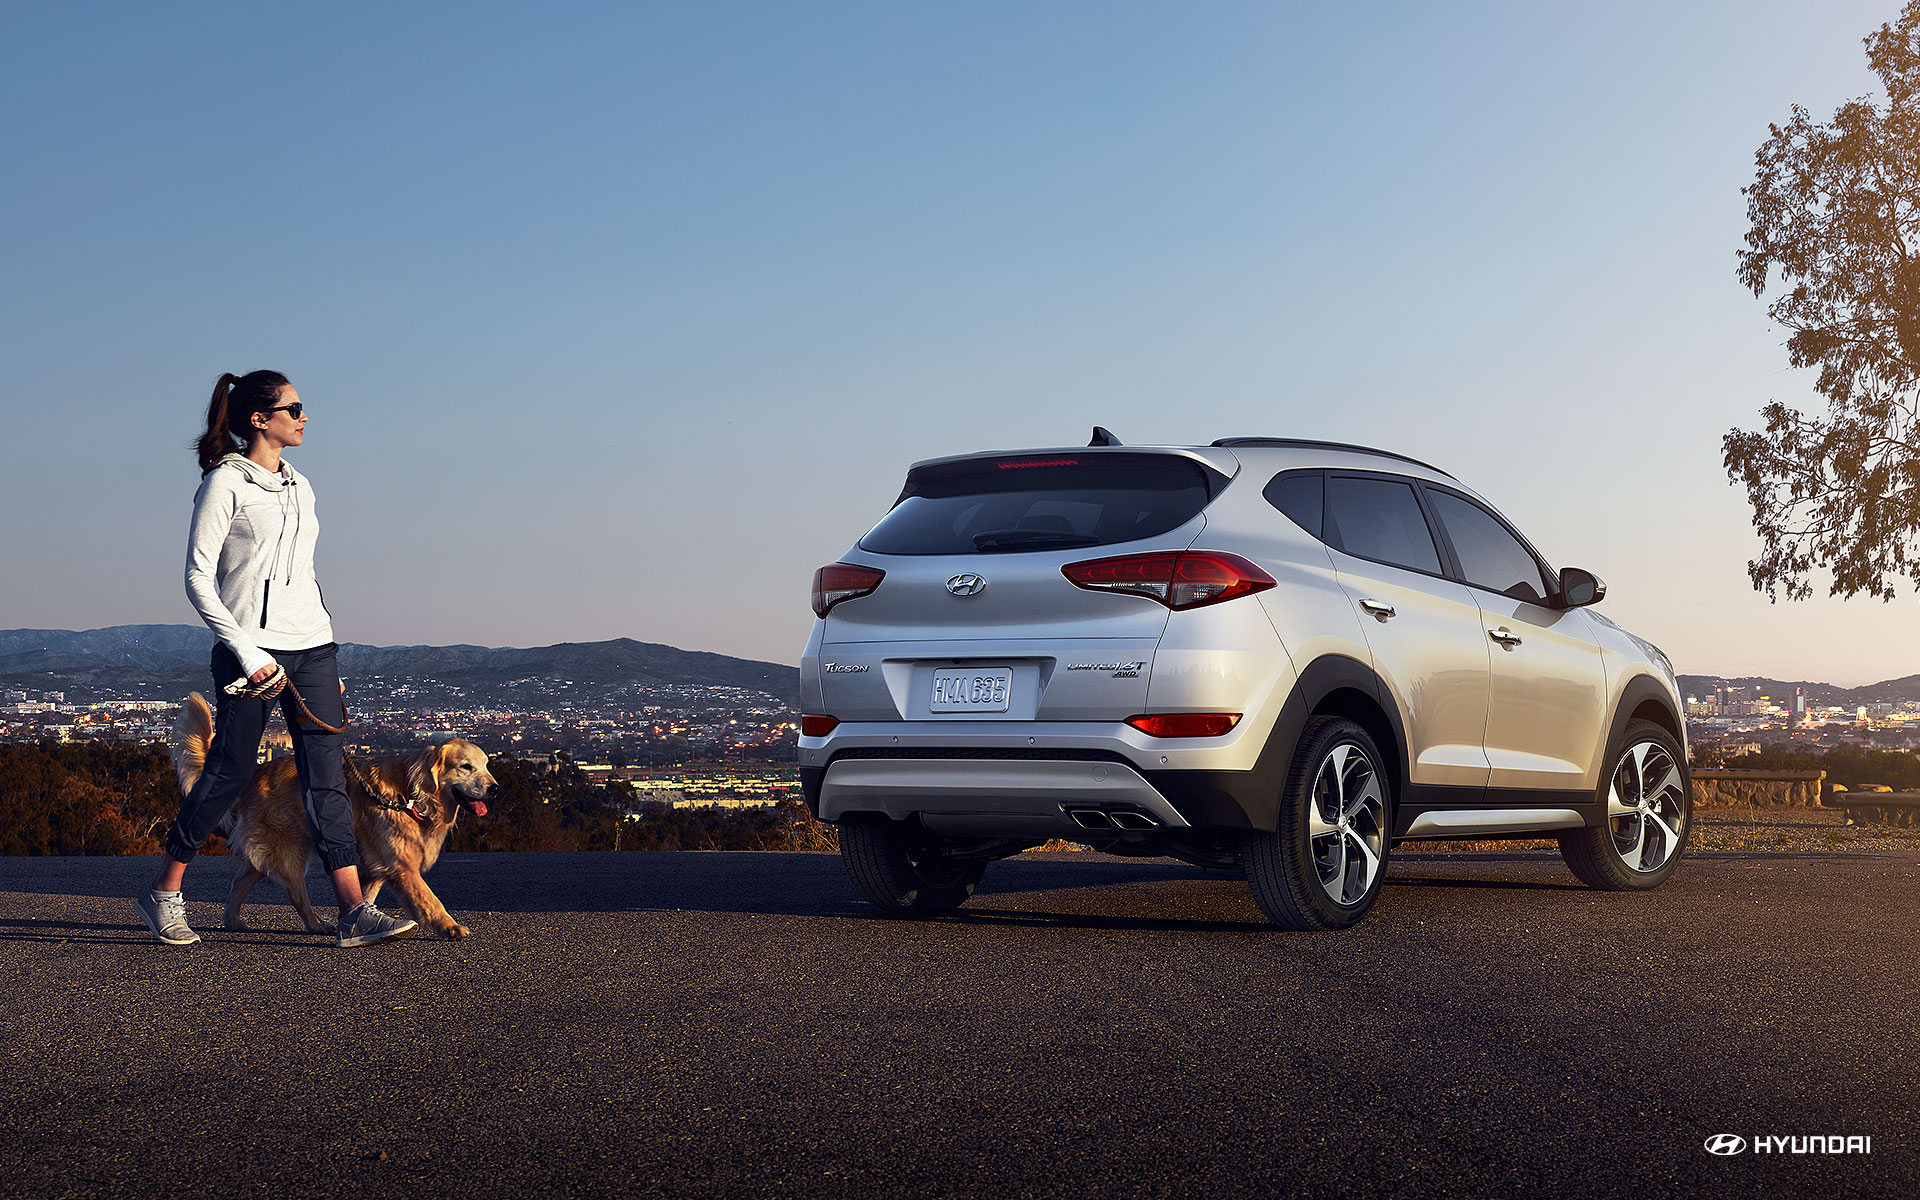 2018 Hyundai Tucson for Lease near Stafford, VA